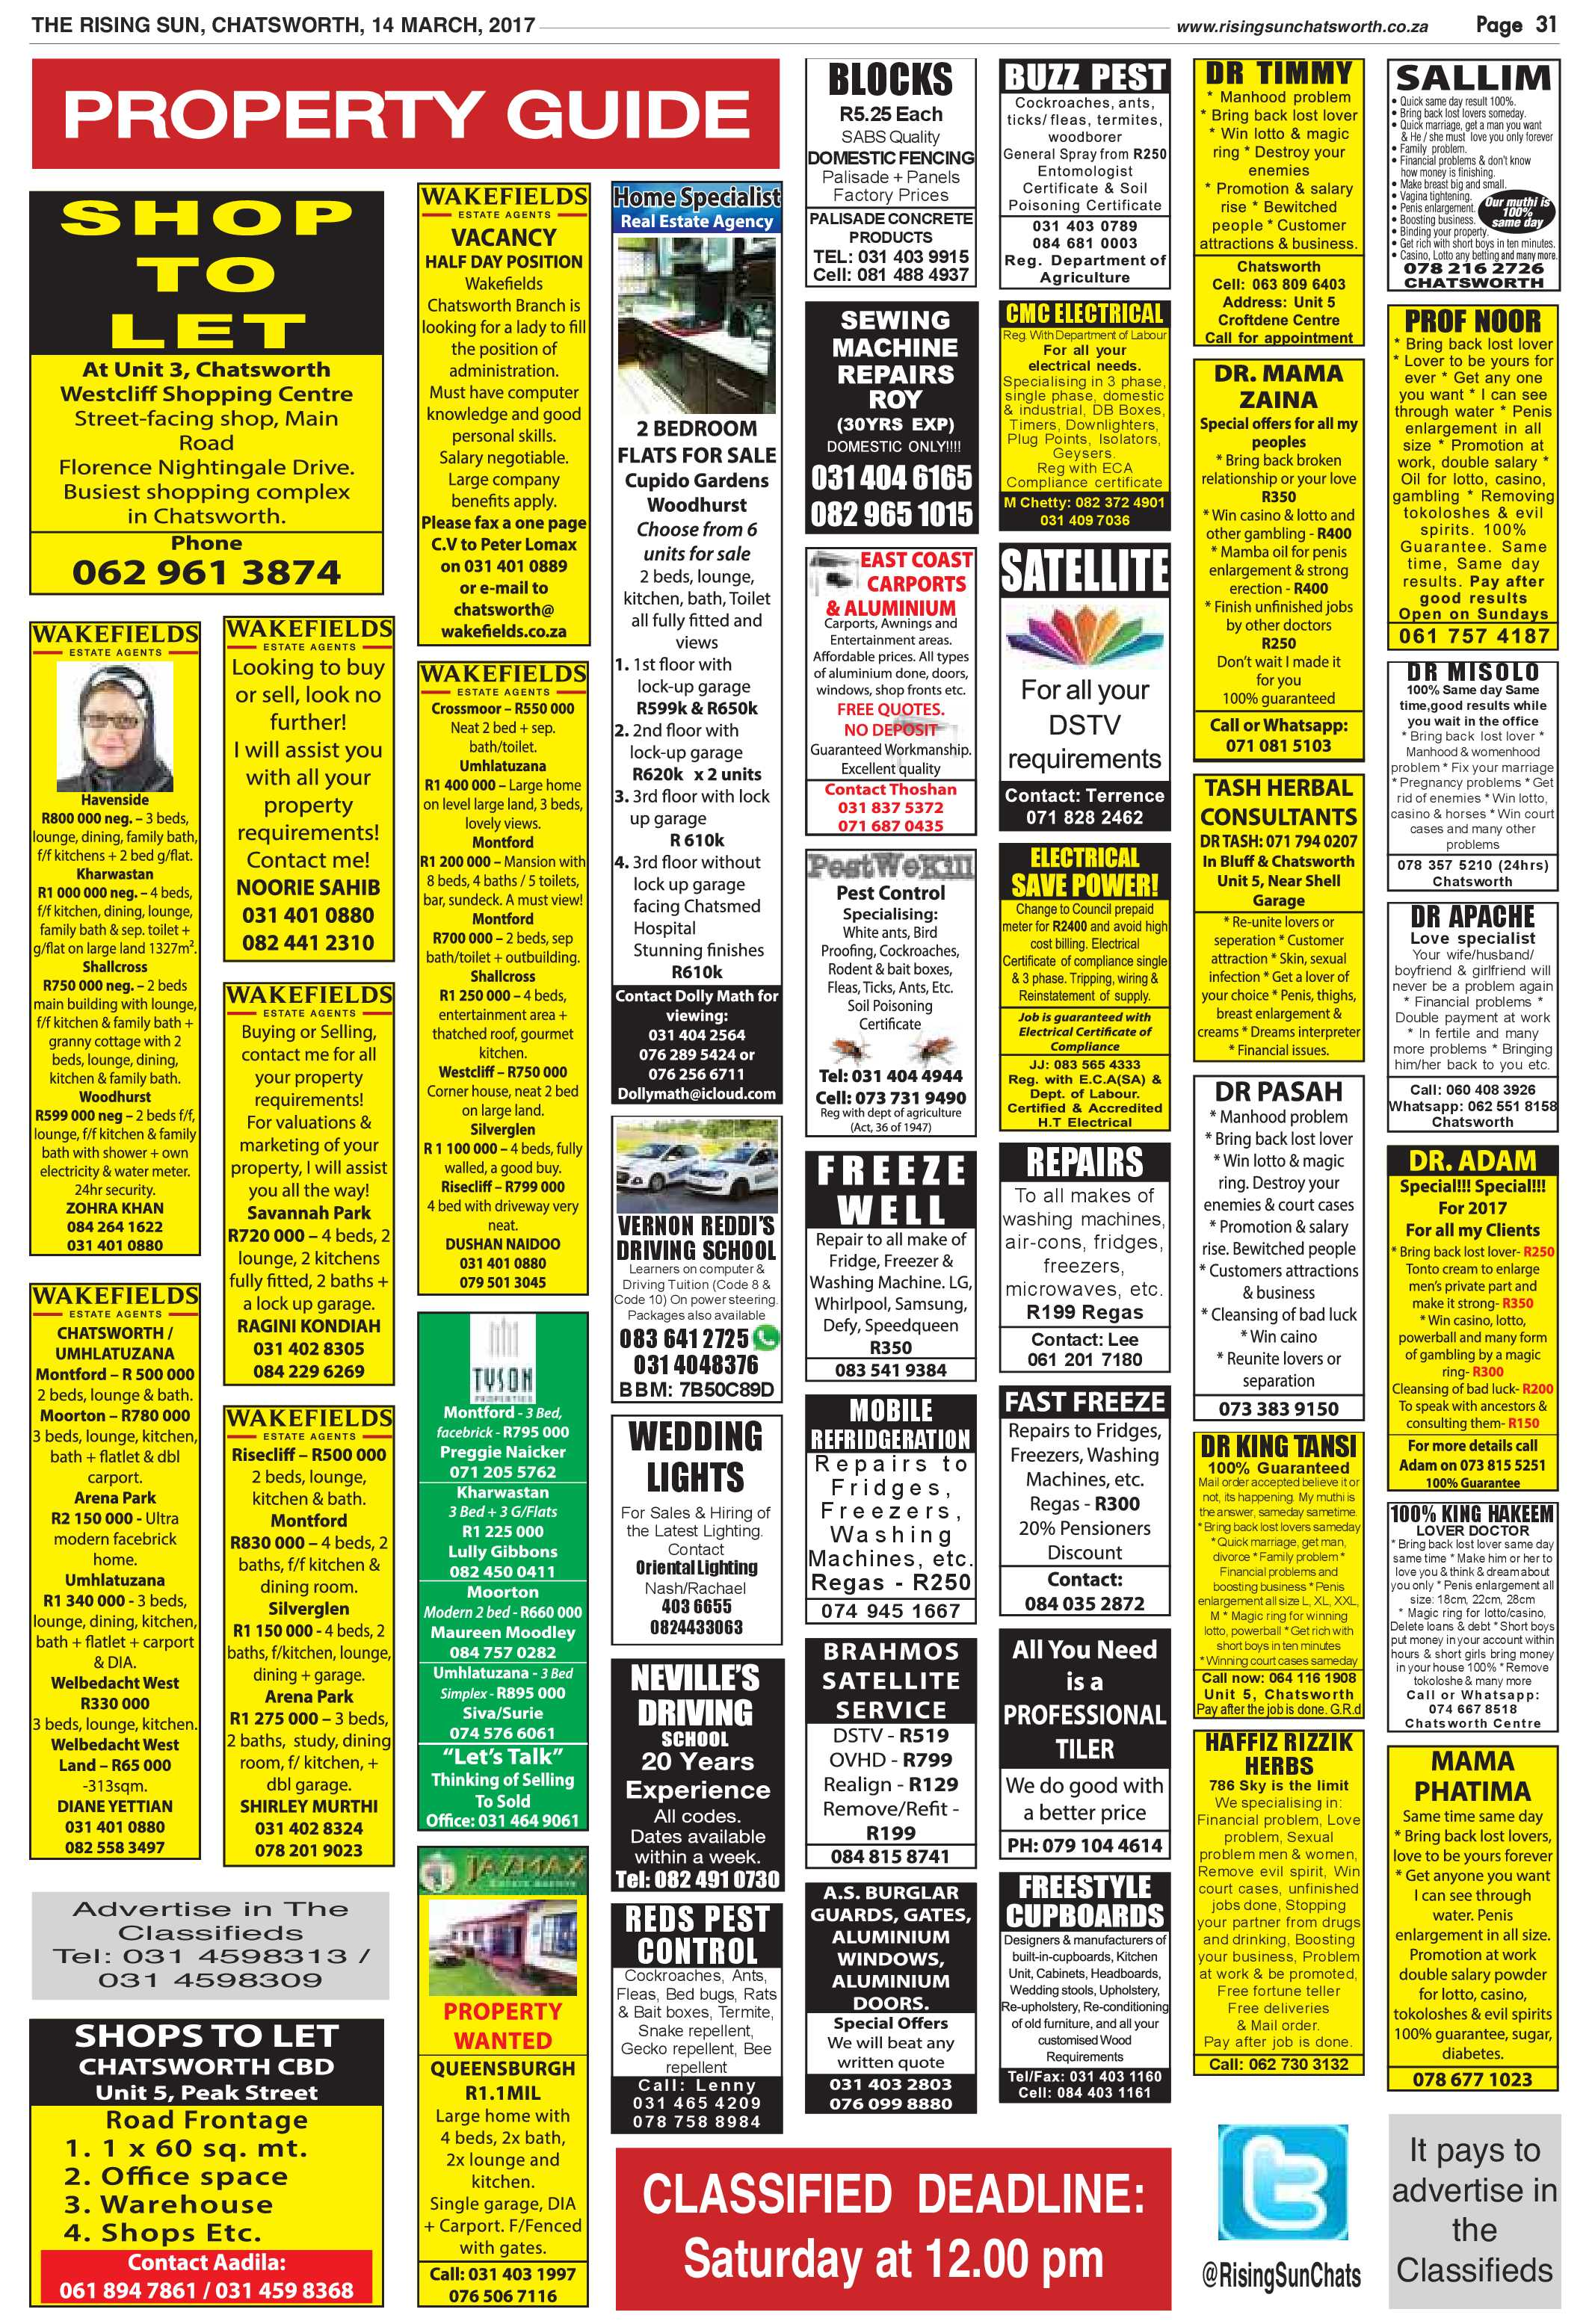 chatsworth-police-slammed-epapers-page-35